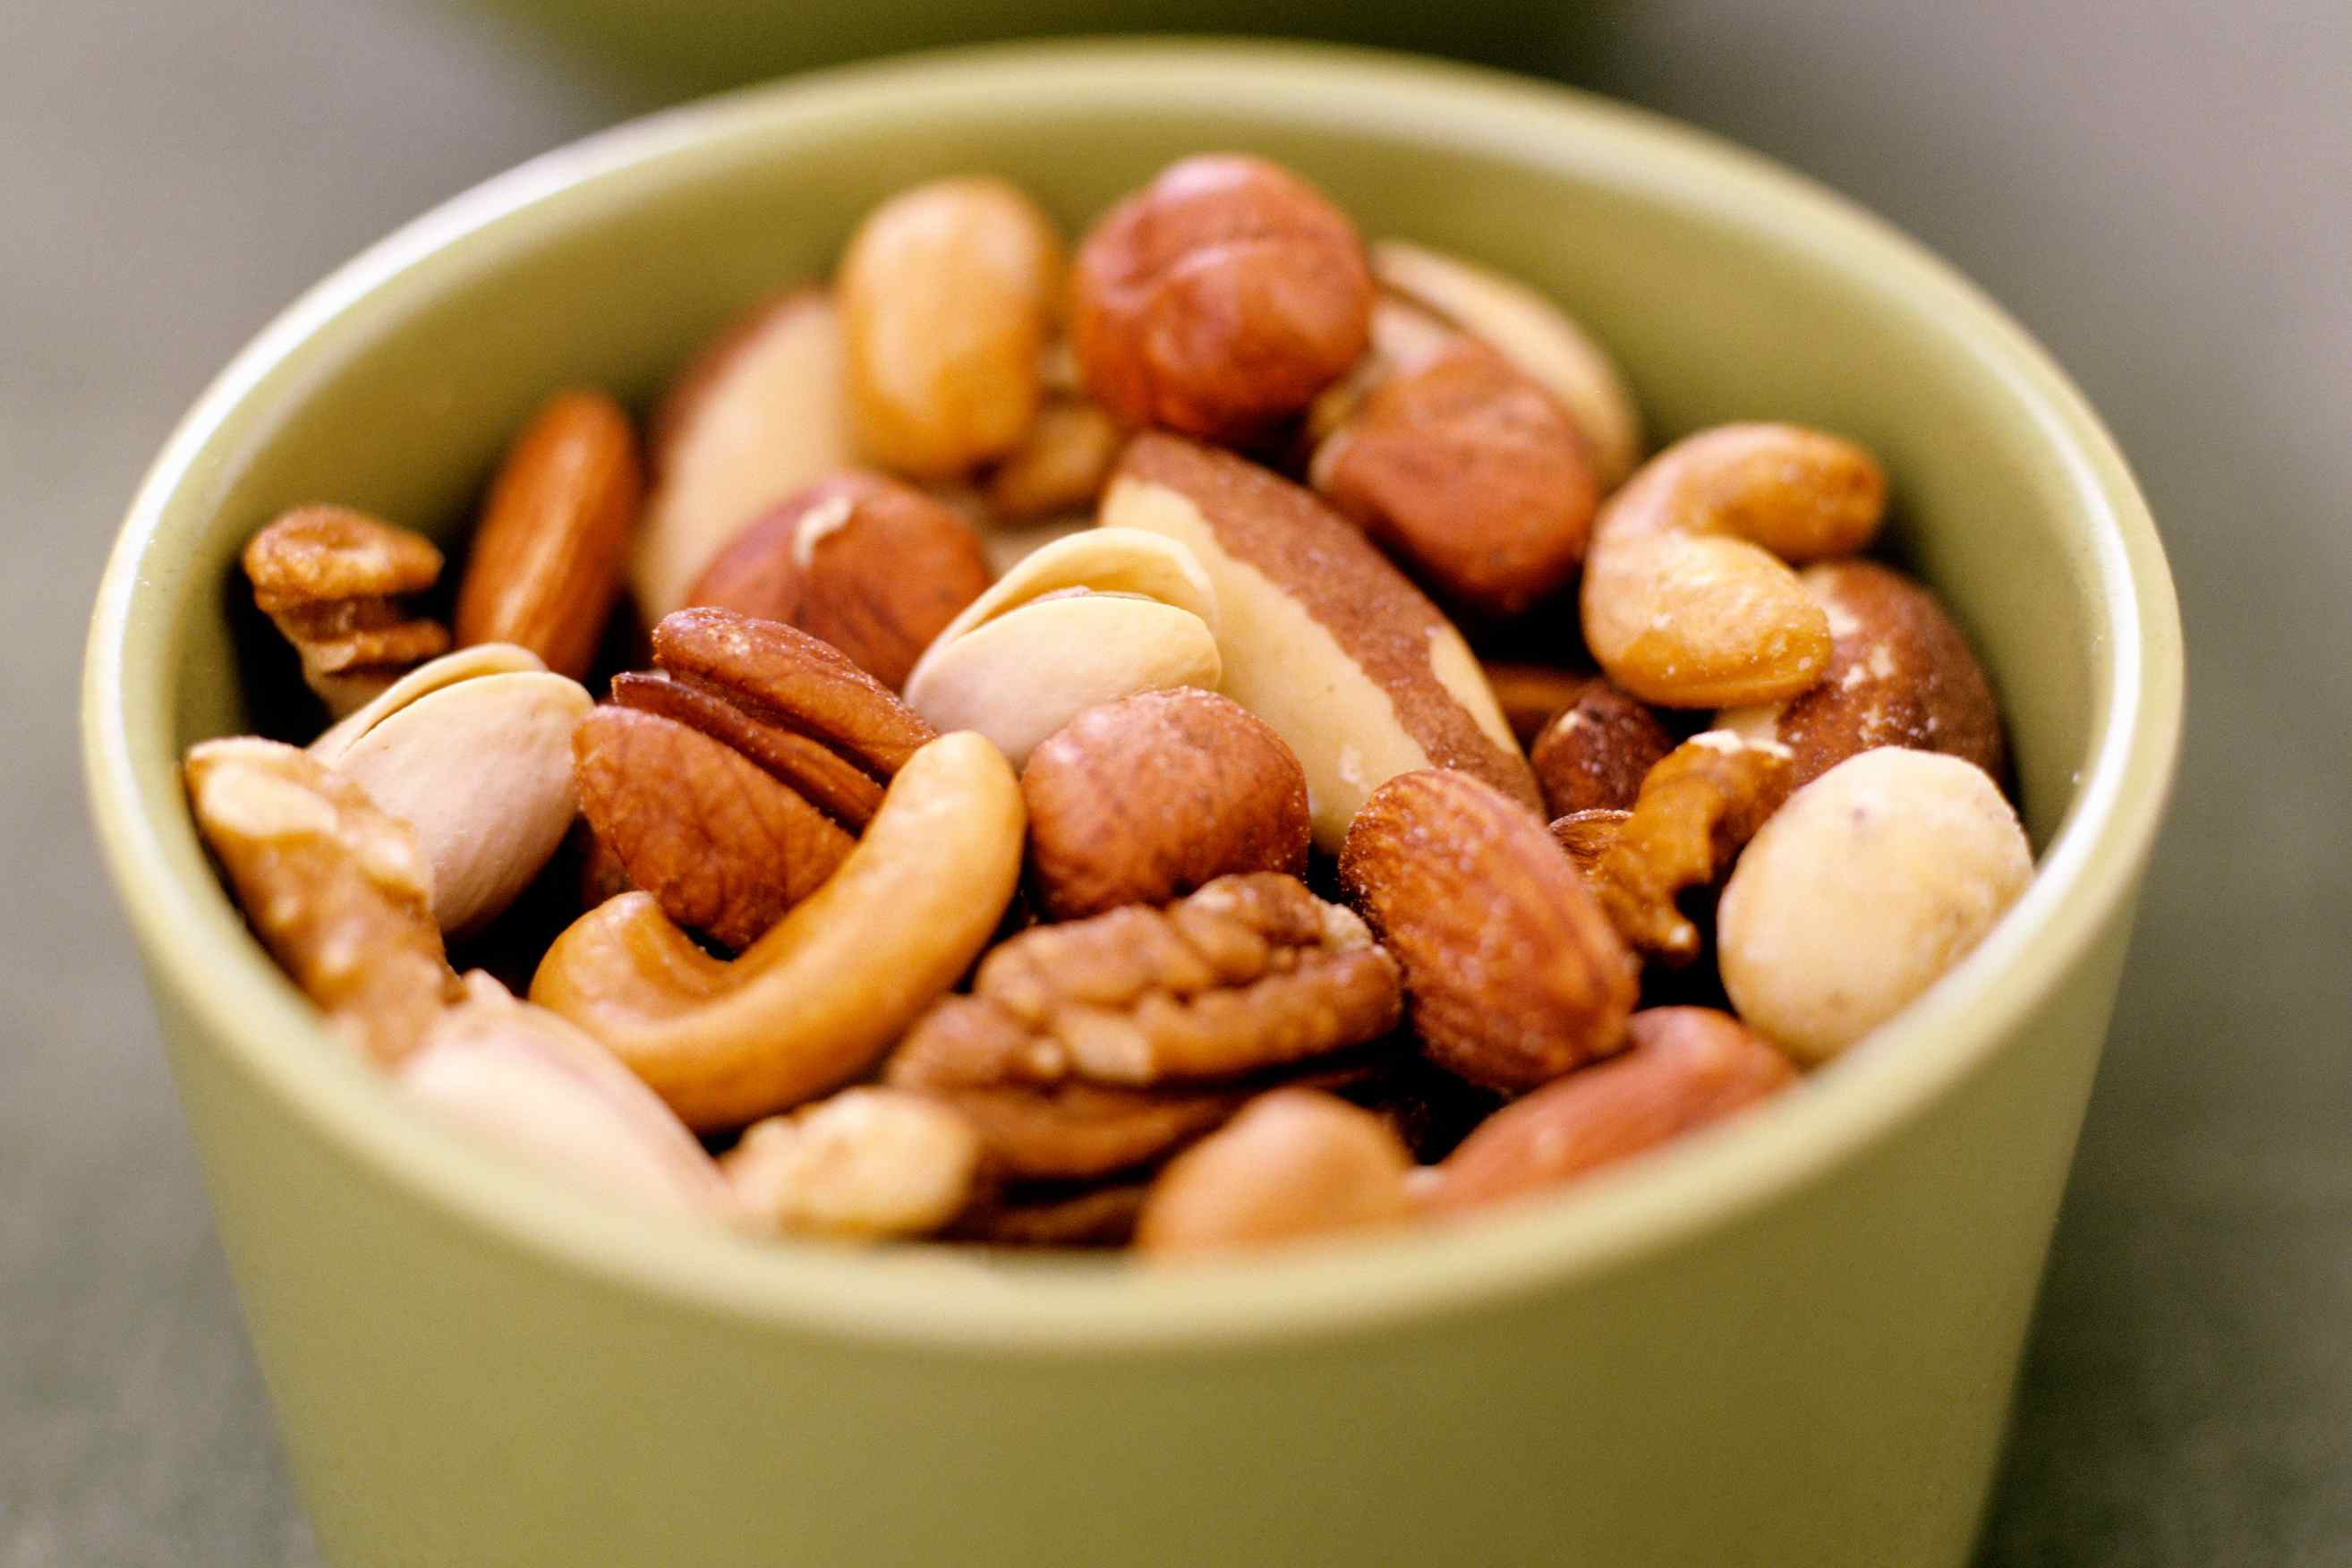 Mixed Nuts in a small bowl